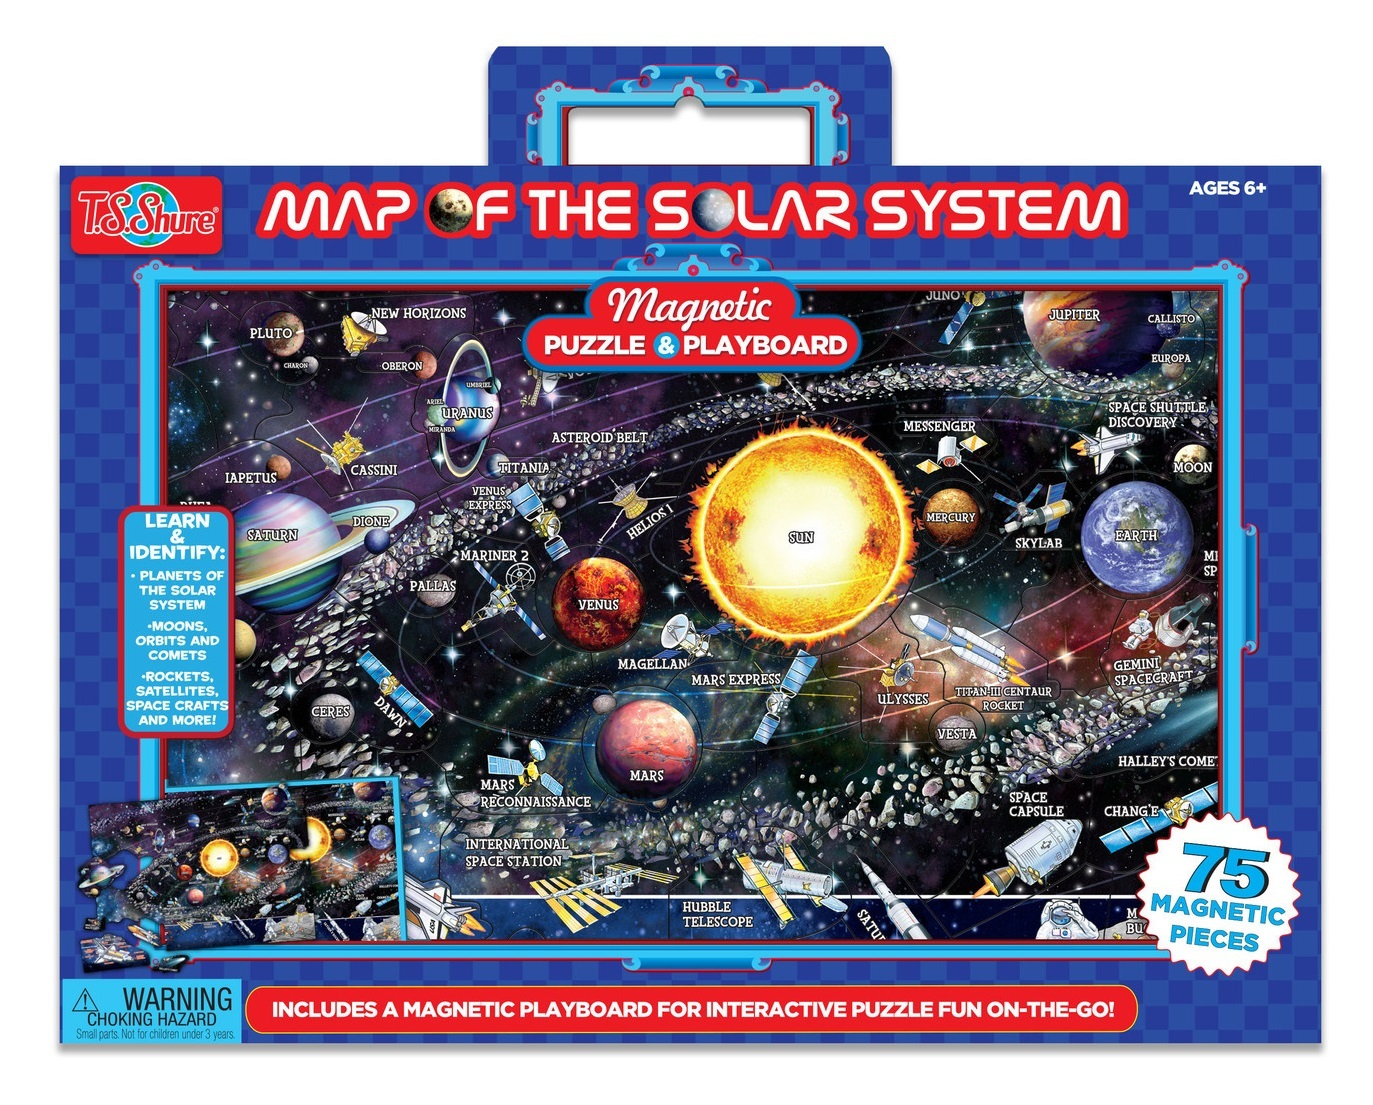 Map Of The Solar System - Magnetic Playboard & Puzzle image